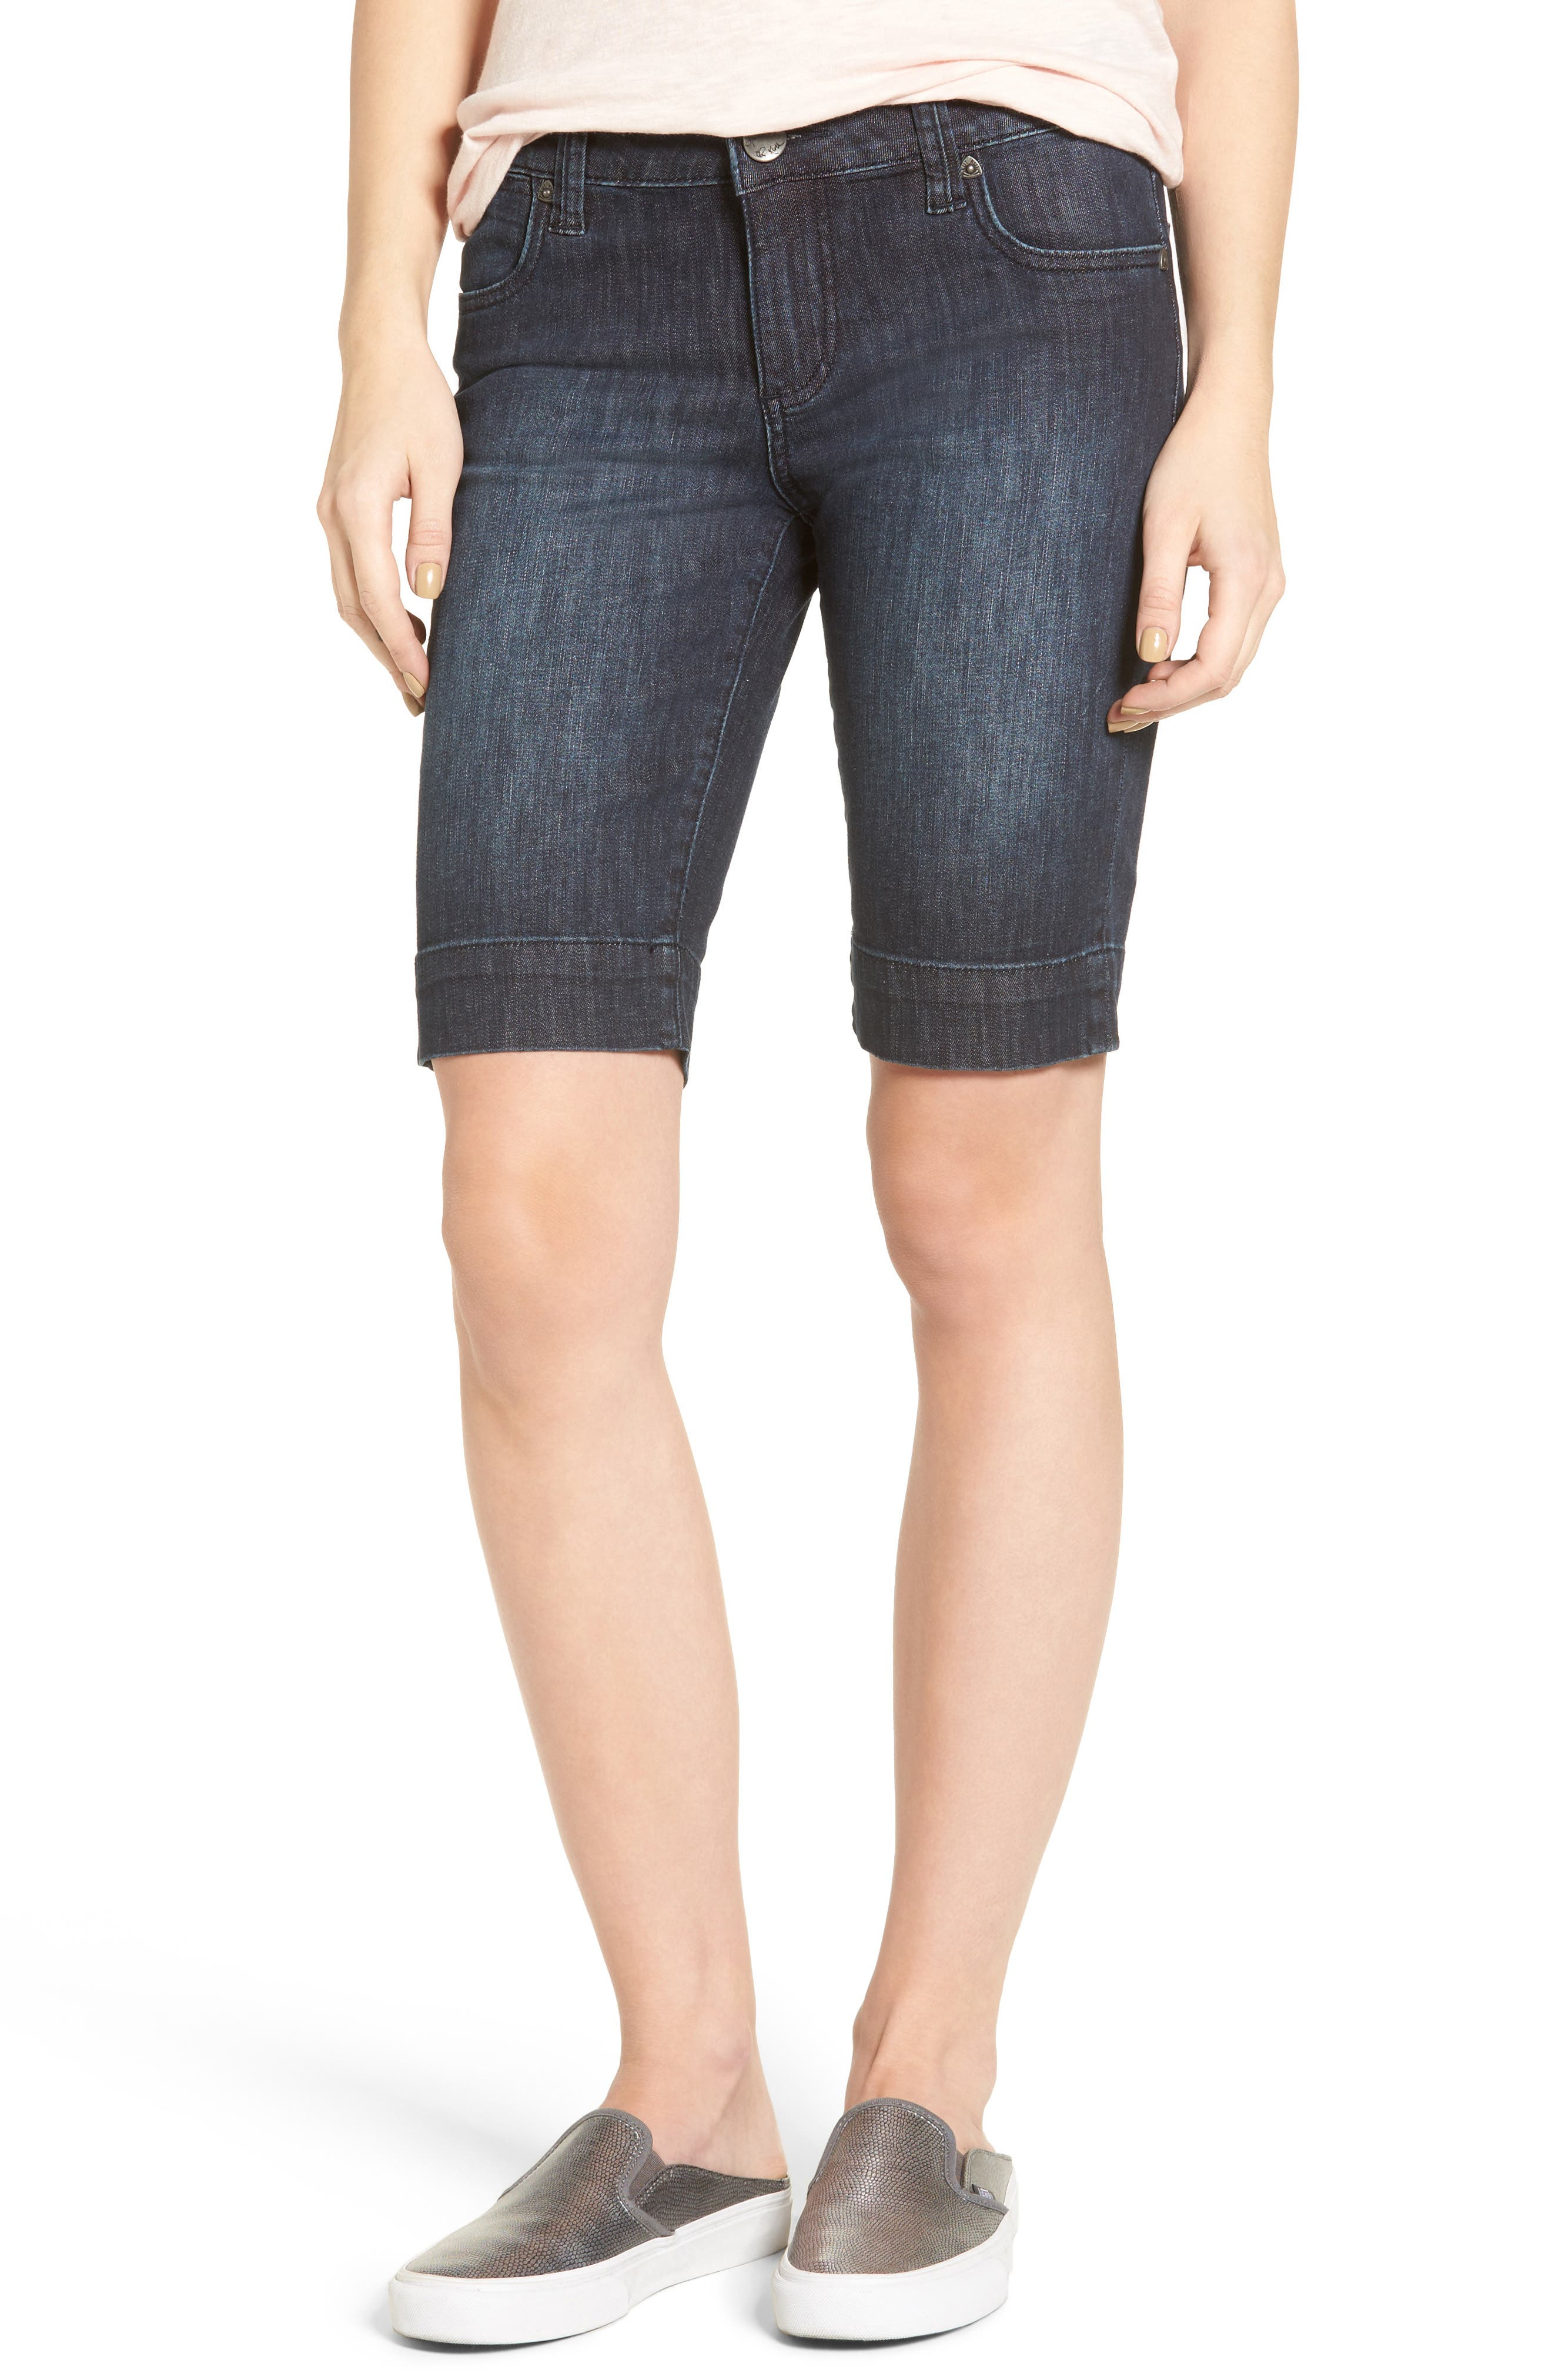 KUT from the Kloth 'Natalie' Twill Bermuda Shorts